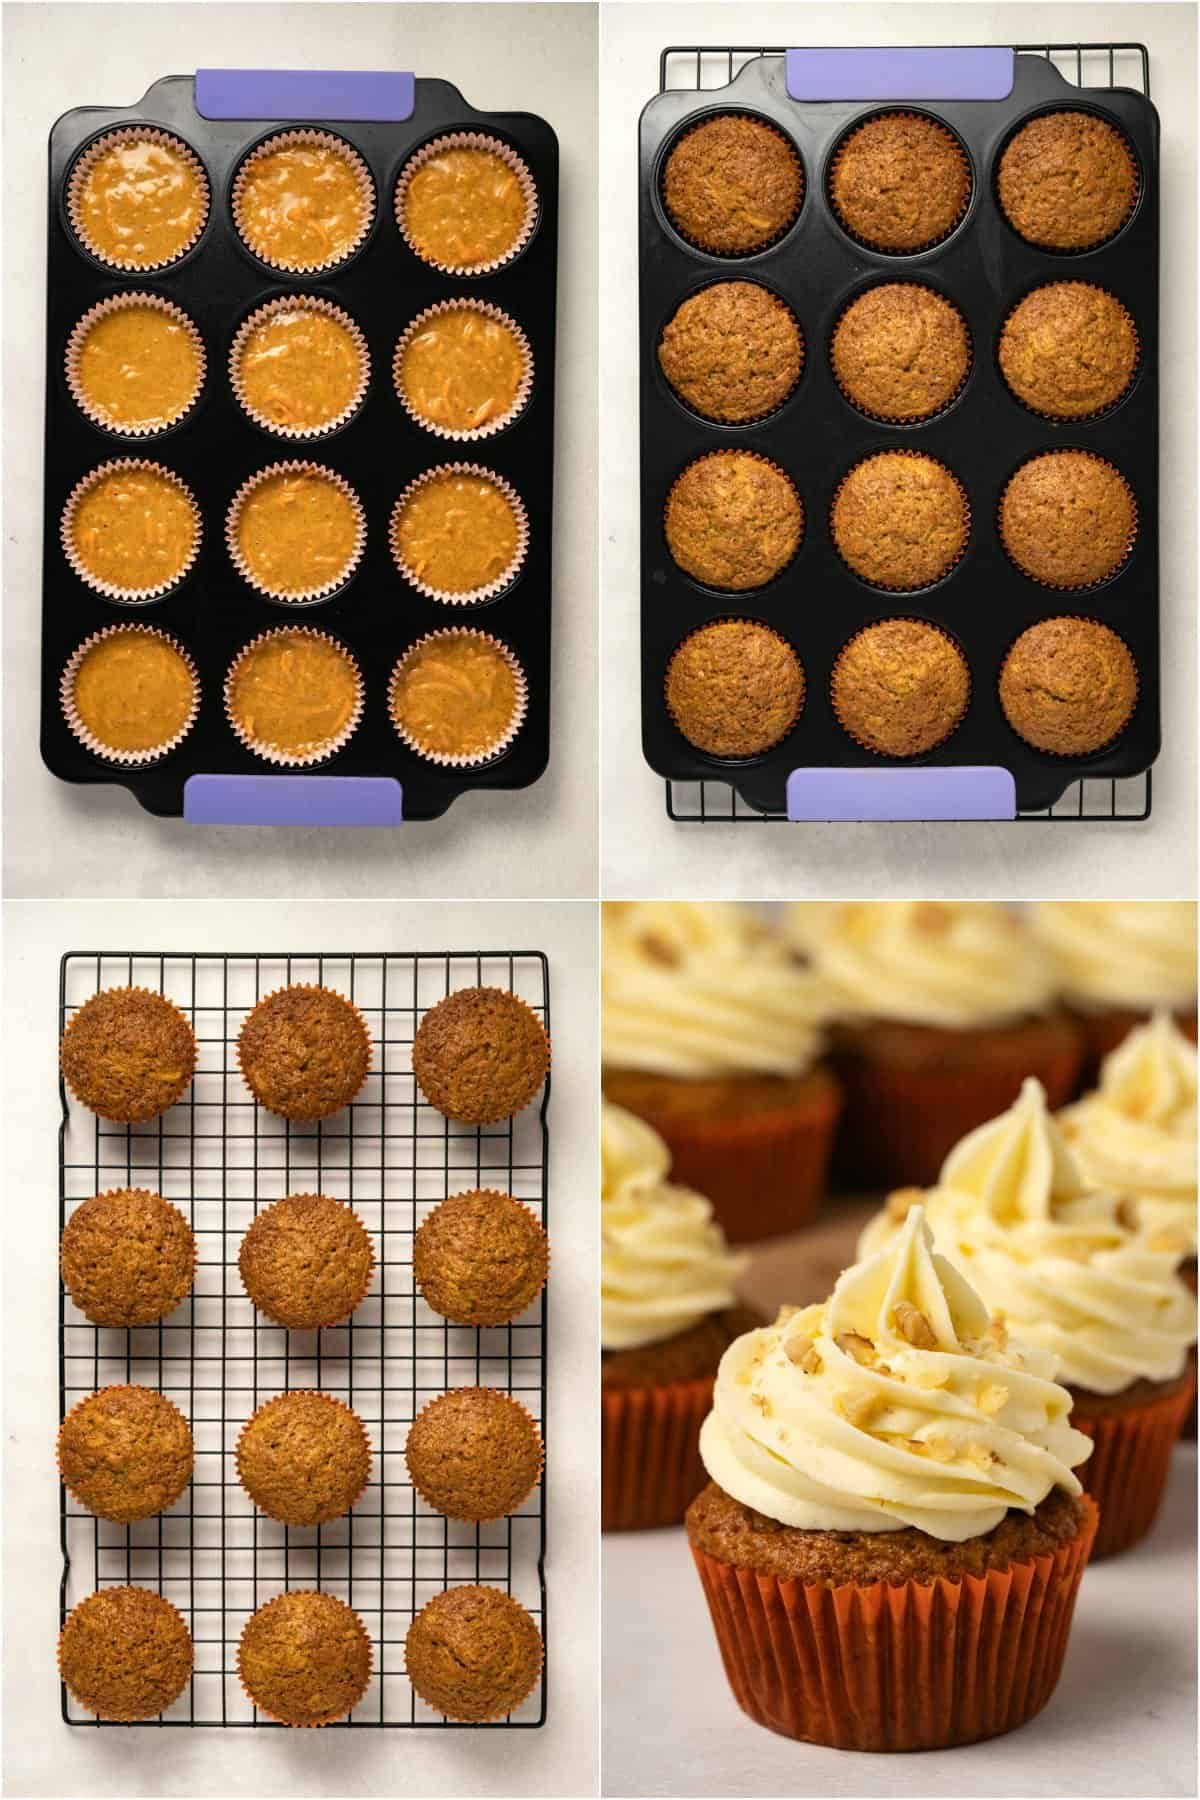 Step by step process photo collage of making carrot cake cupcakes.